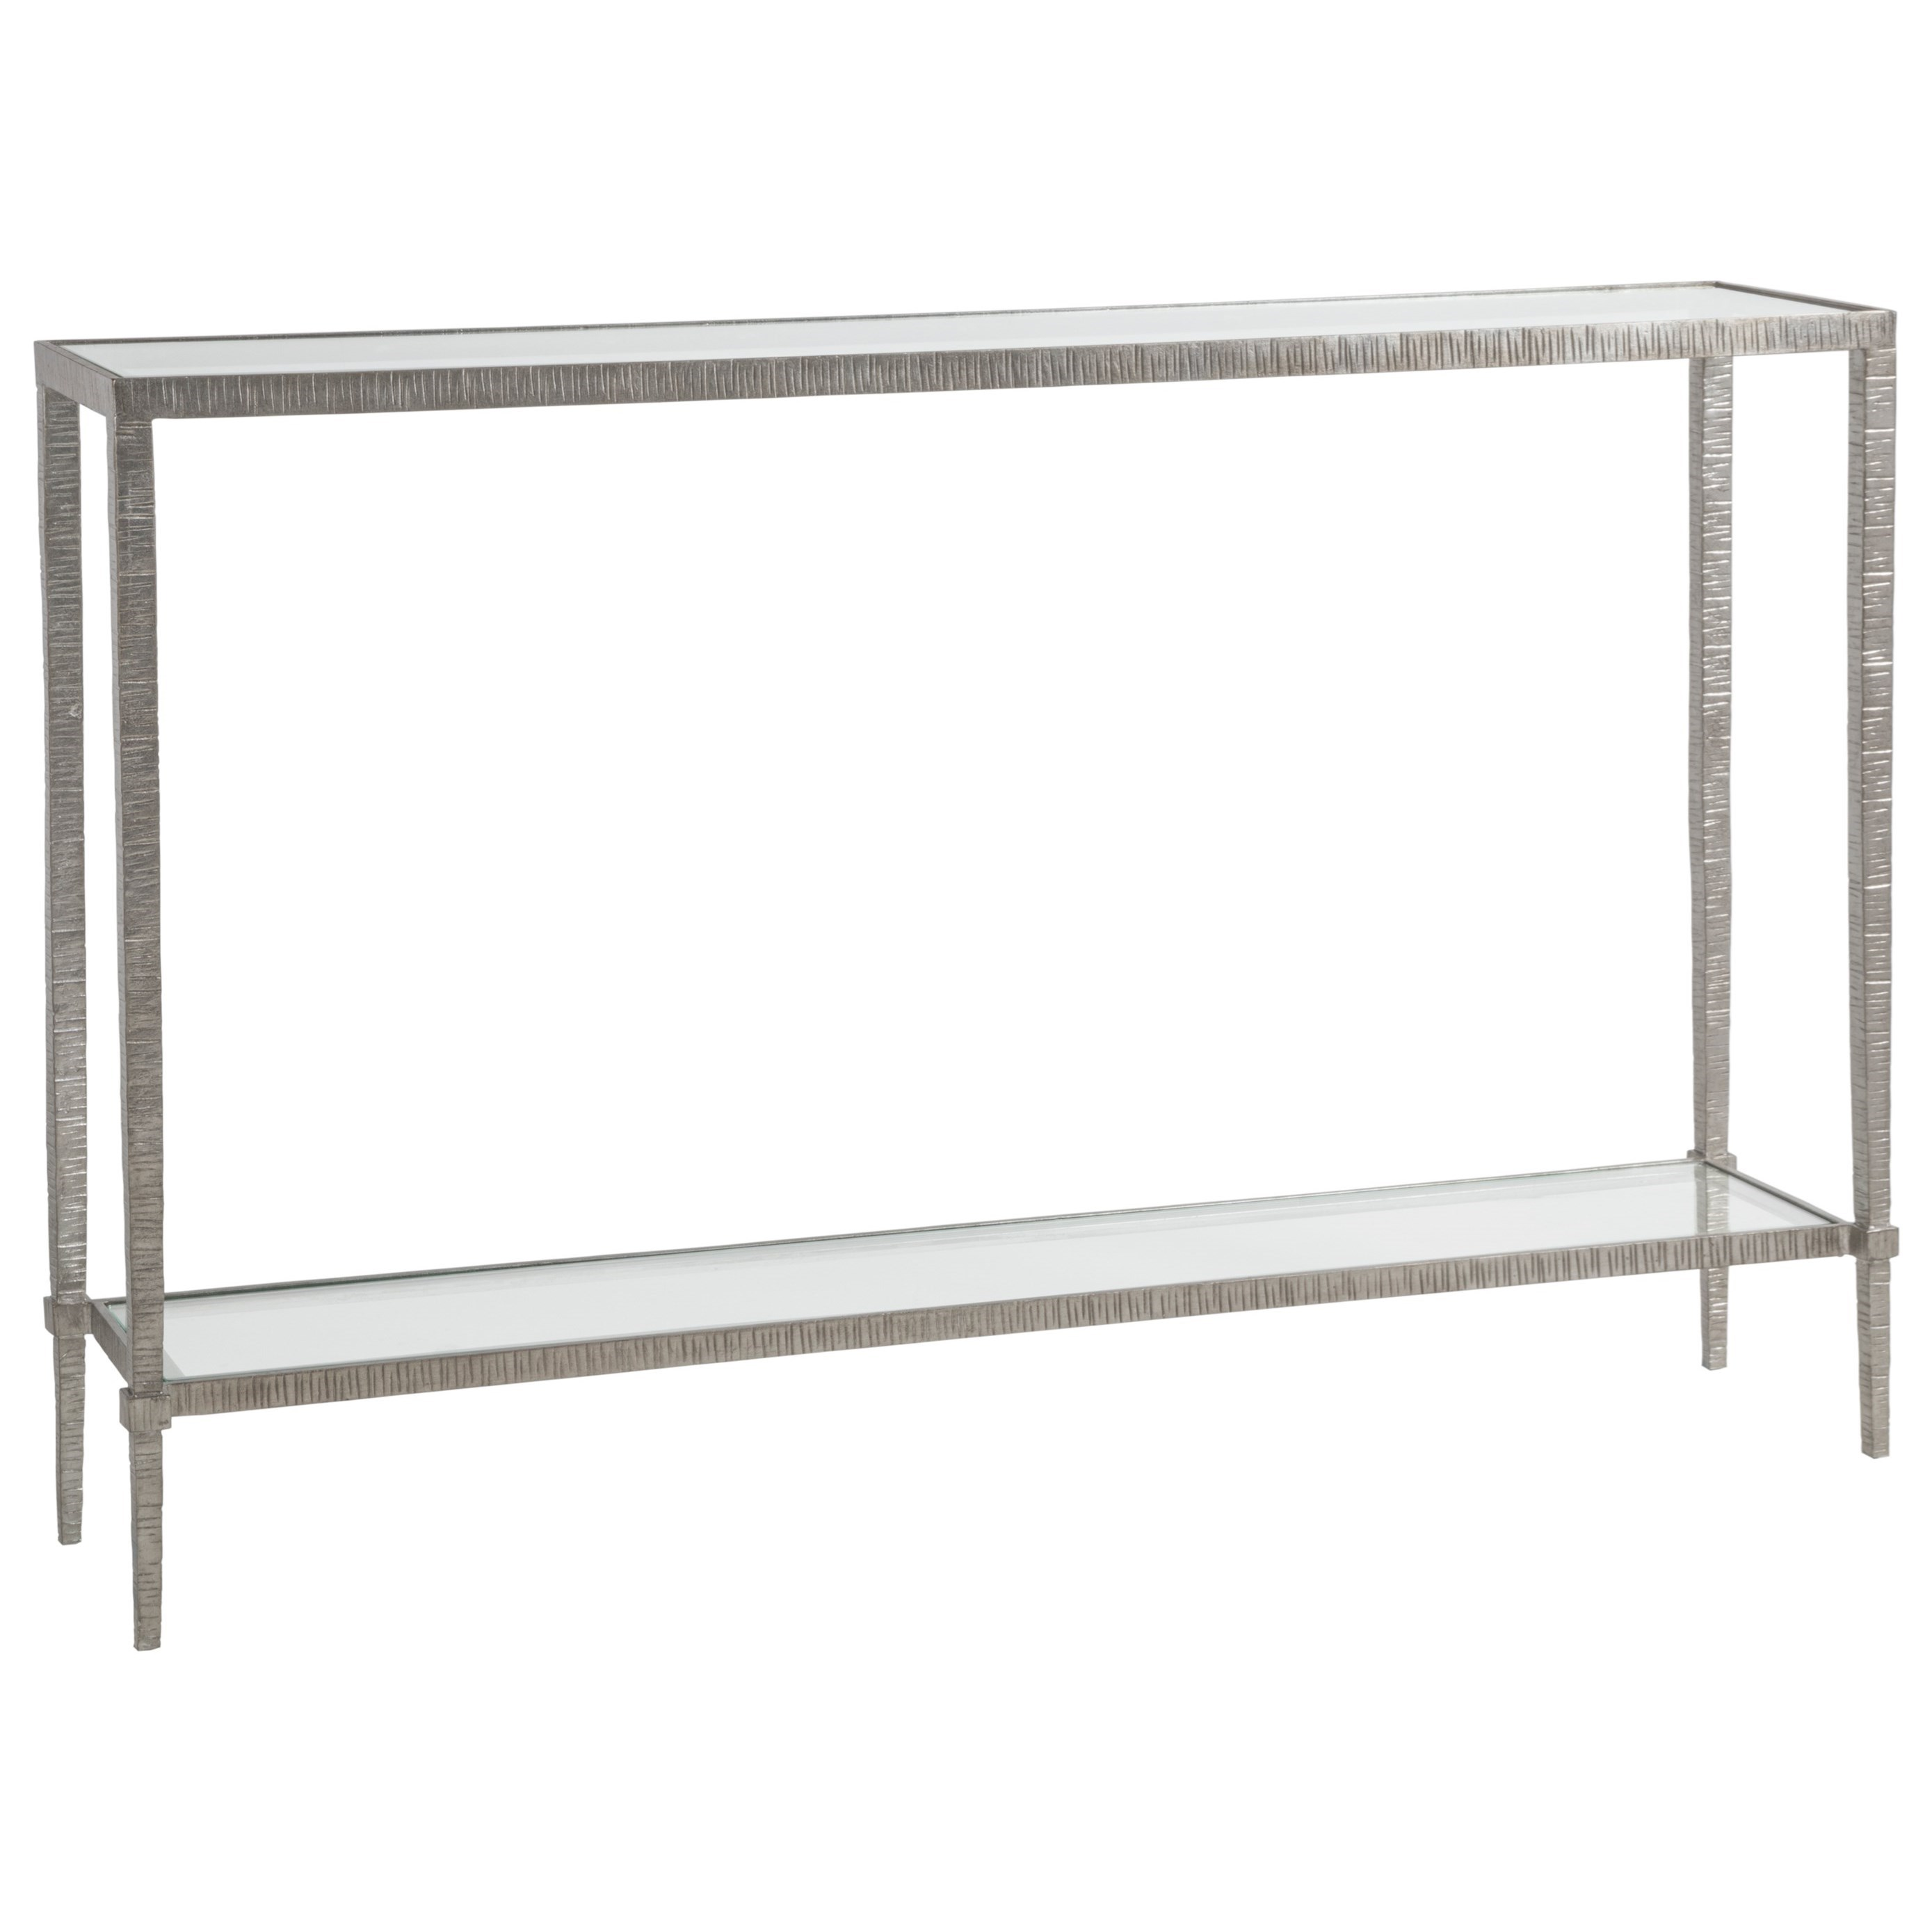 Artistica Metal Claret Console by Artistica at Alison Craig Home Furnishings